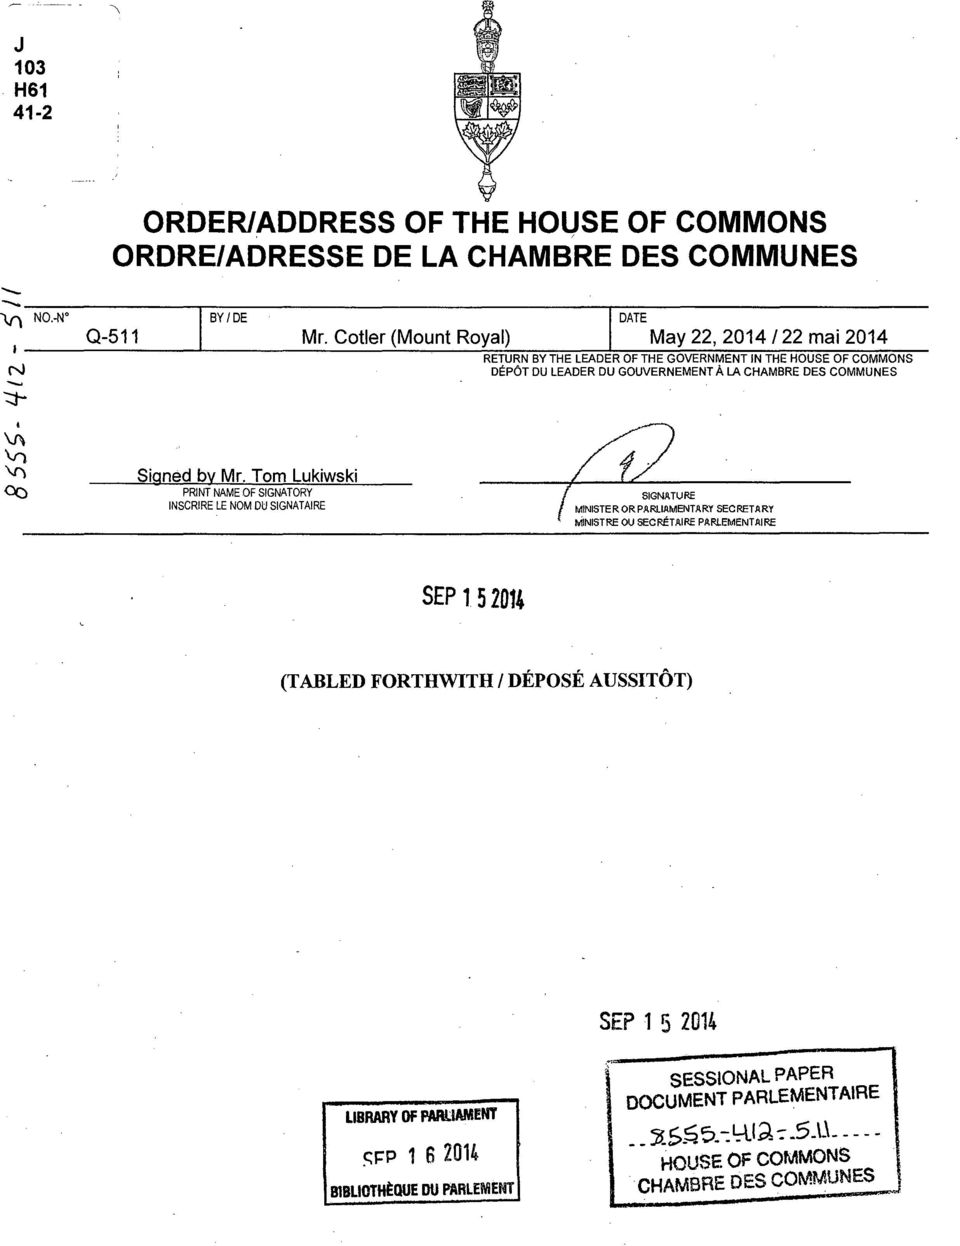 Cotler (Mount Royal) May 22, 2014/22 mai 2014 DATE RETURN BY THE LEADER OF THE GOVERNMENT IN THE HOU SE OF GOMMONS DÉPÔT DU LEADER DU GOUVERNEMENT À LA CHAMBRE DES COMMUNES Signed by Mr.